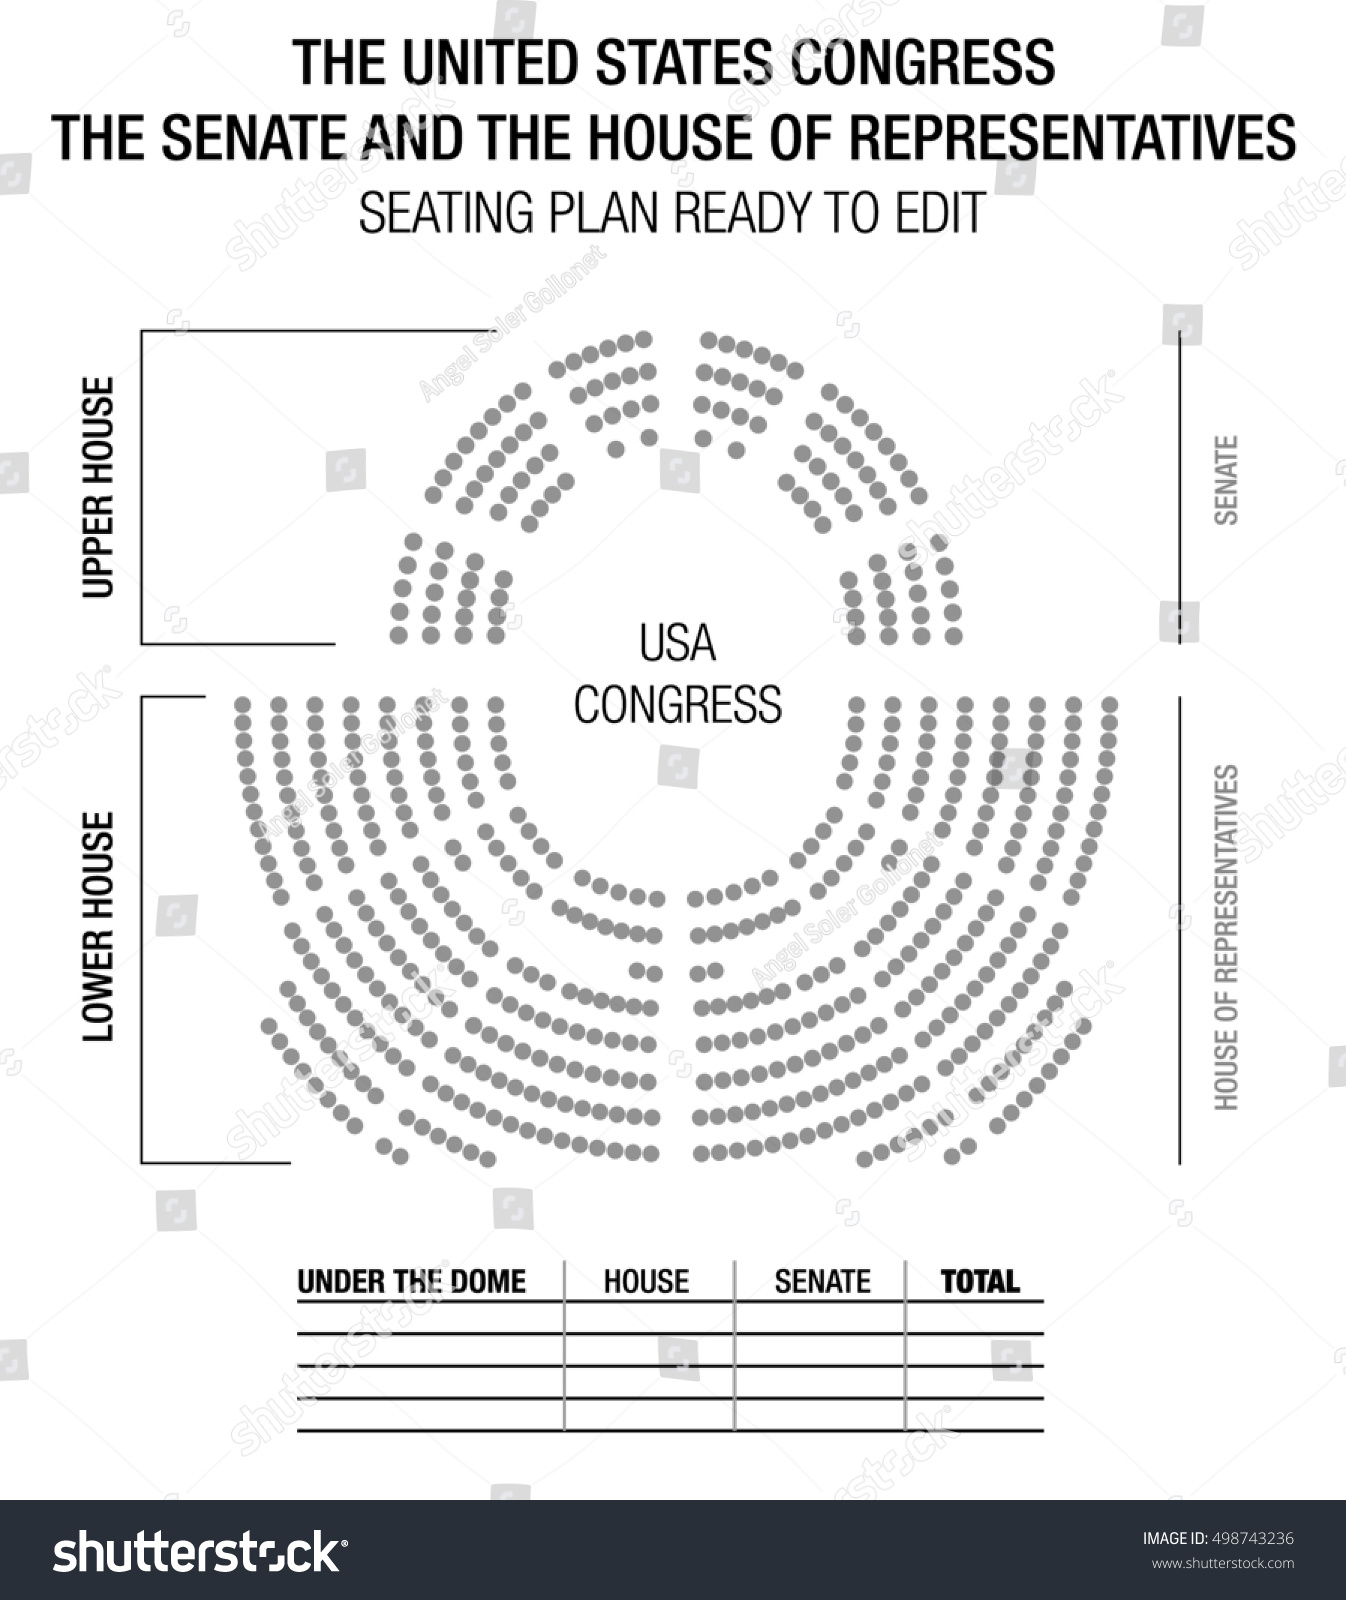 Editable Infographic To Show Results Of Elections. Seating Plan Of The  United States Congress: